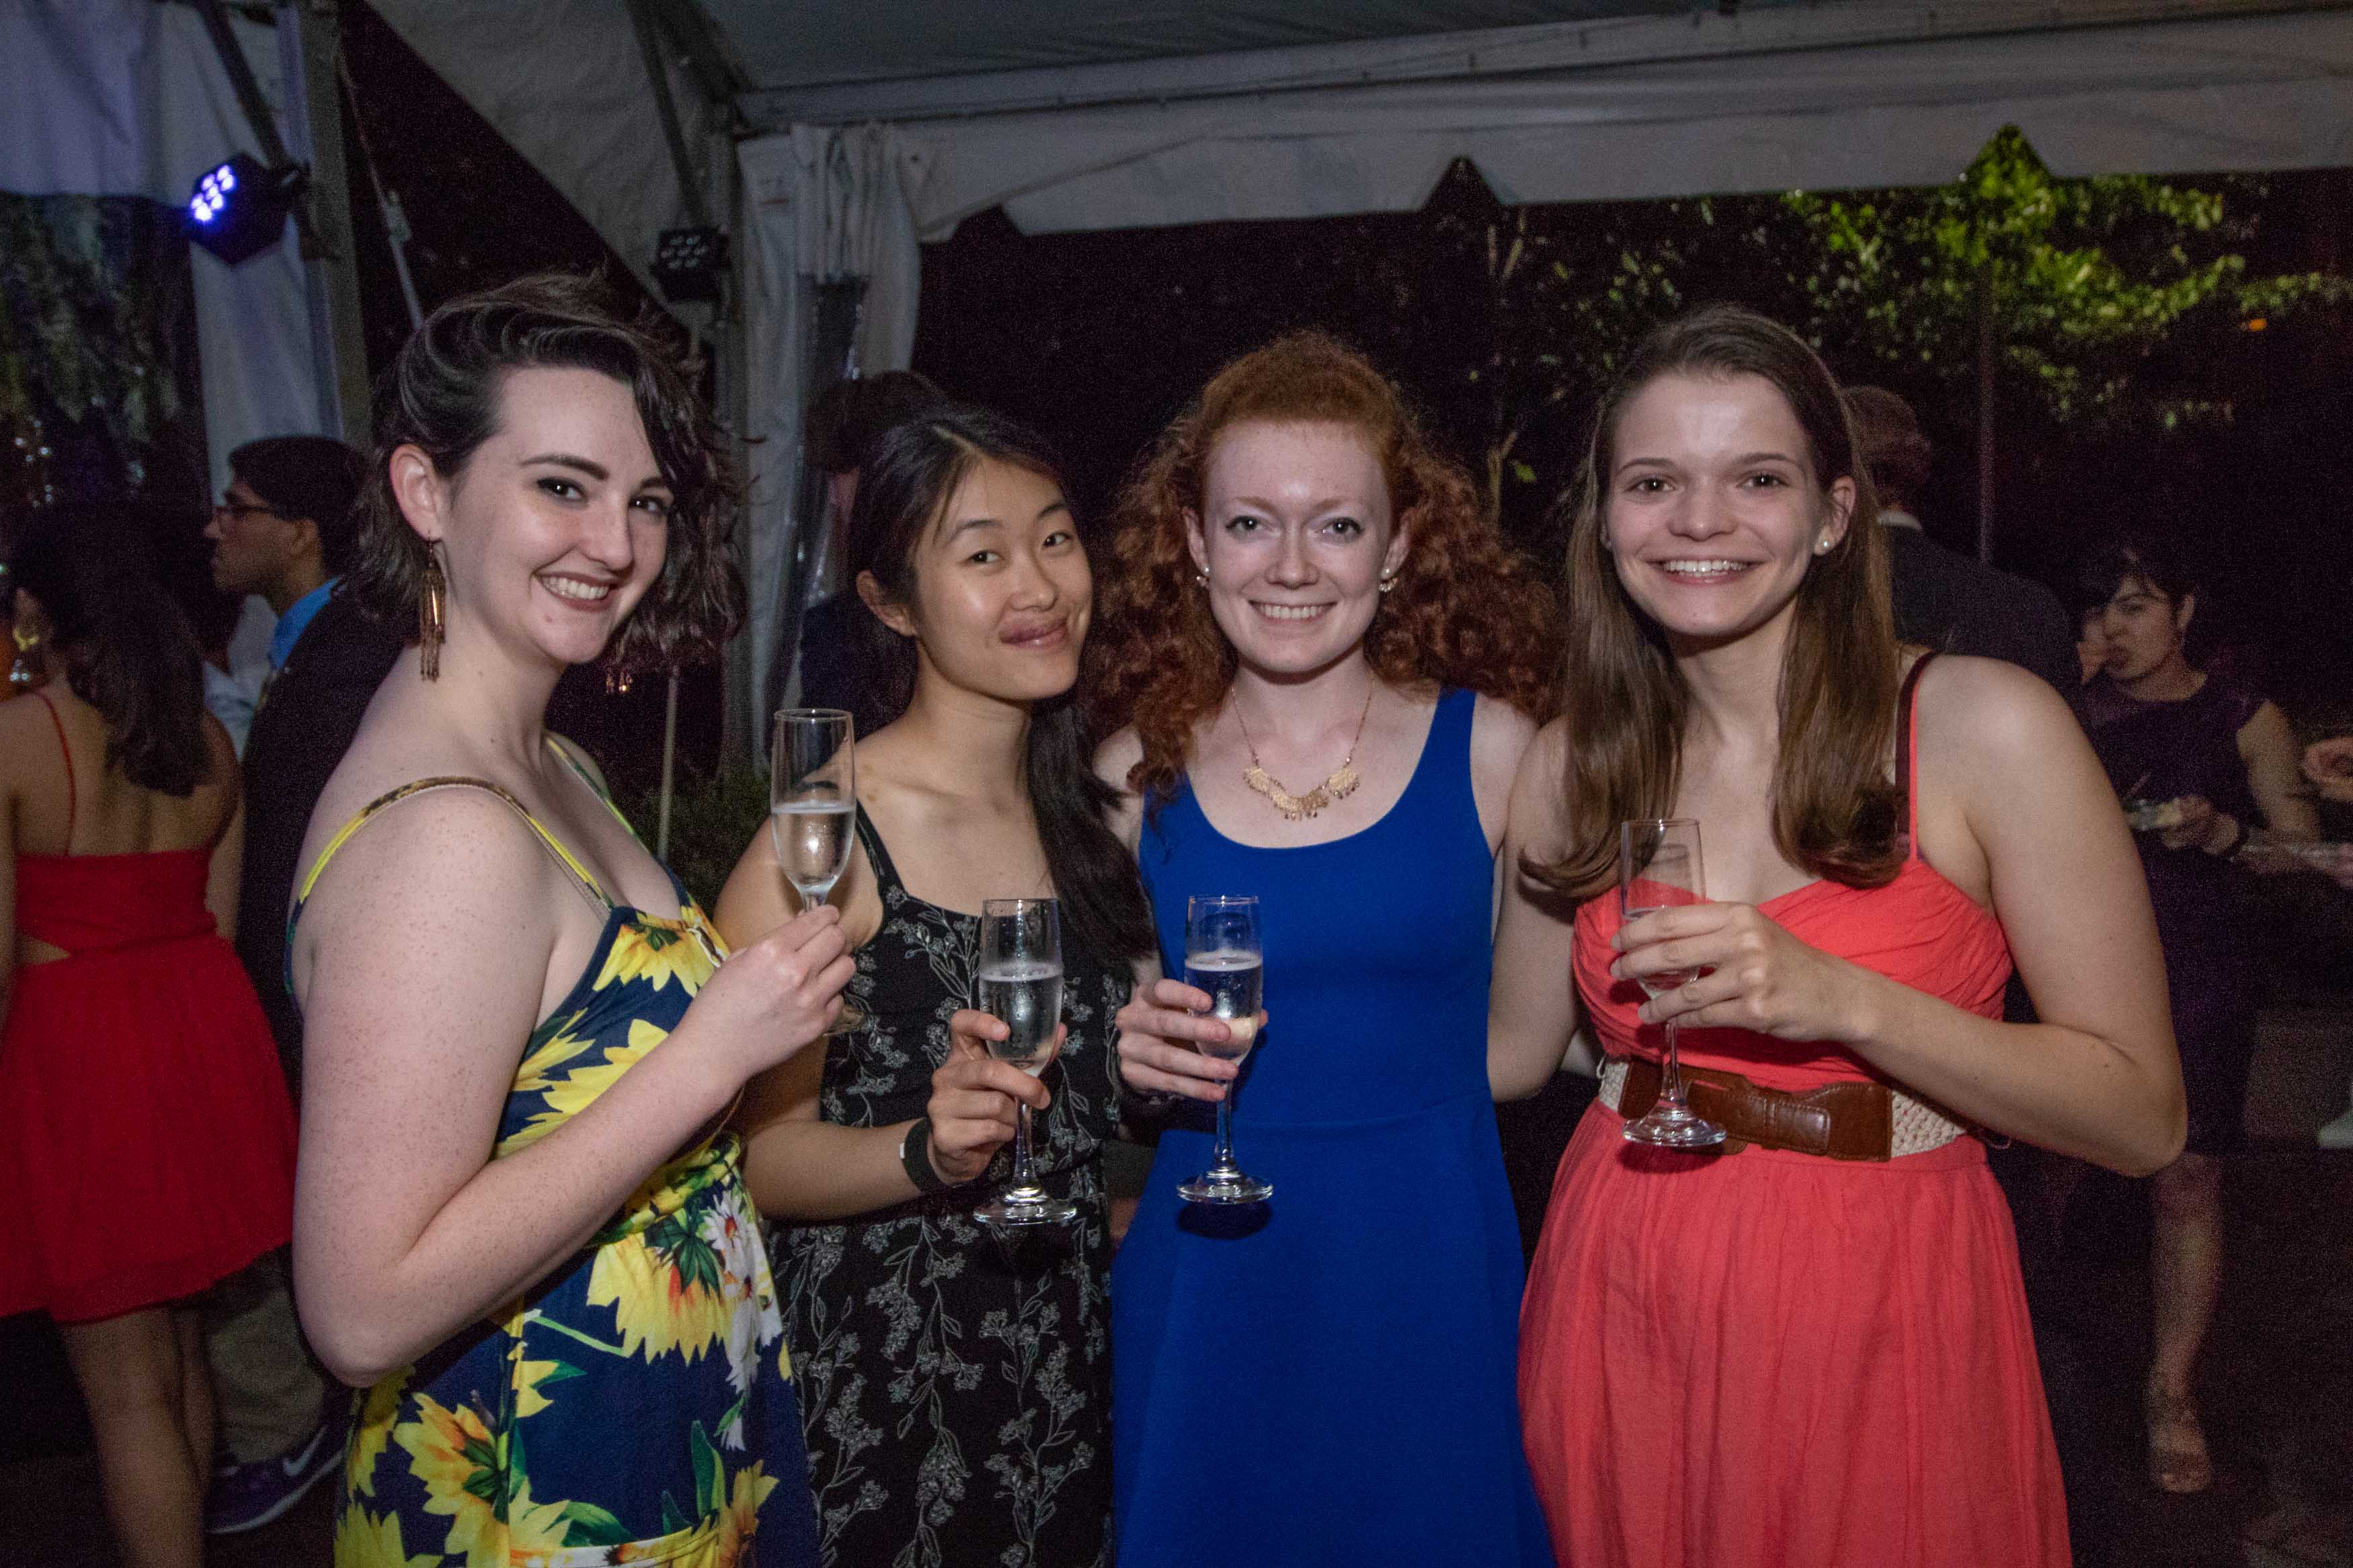 Four women hold up their wine glasses